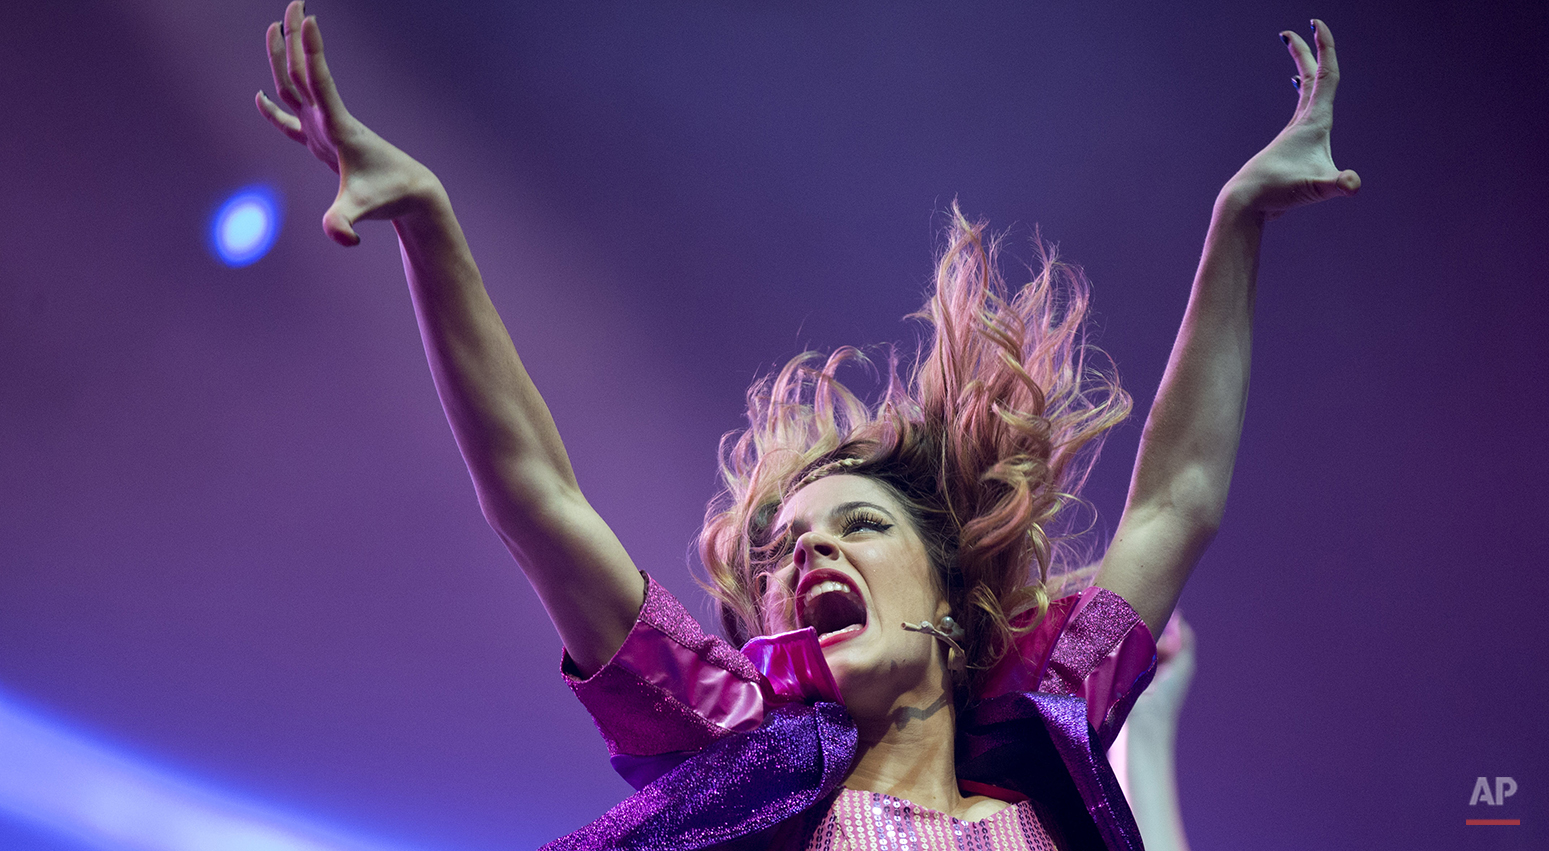 """Disney Channel star Martina Stoessel, of Argentina, performs in concert as """"Violetta,"""" her character from the Disney Channel television series of the same name, in Buenos Aires, Argentina, Tuesday, July 23, 2013. (AP Photo/Natacha Pisarenko)"""